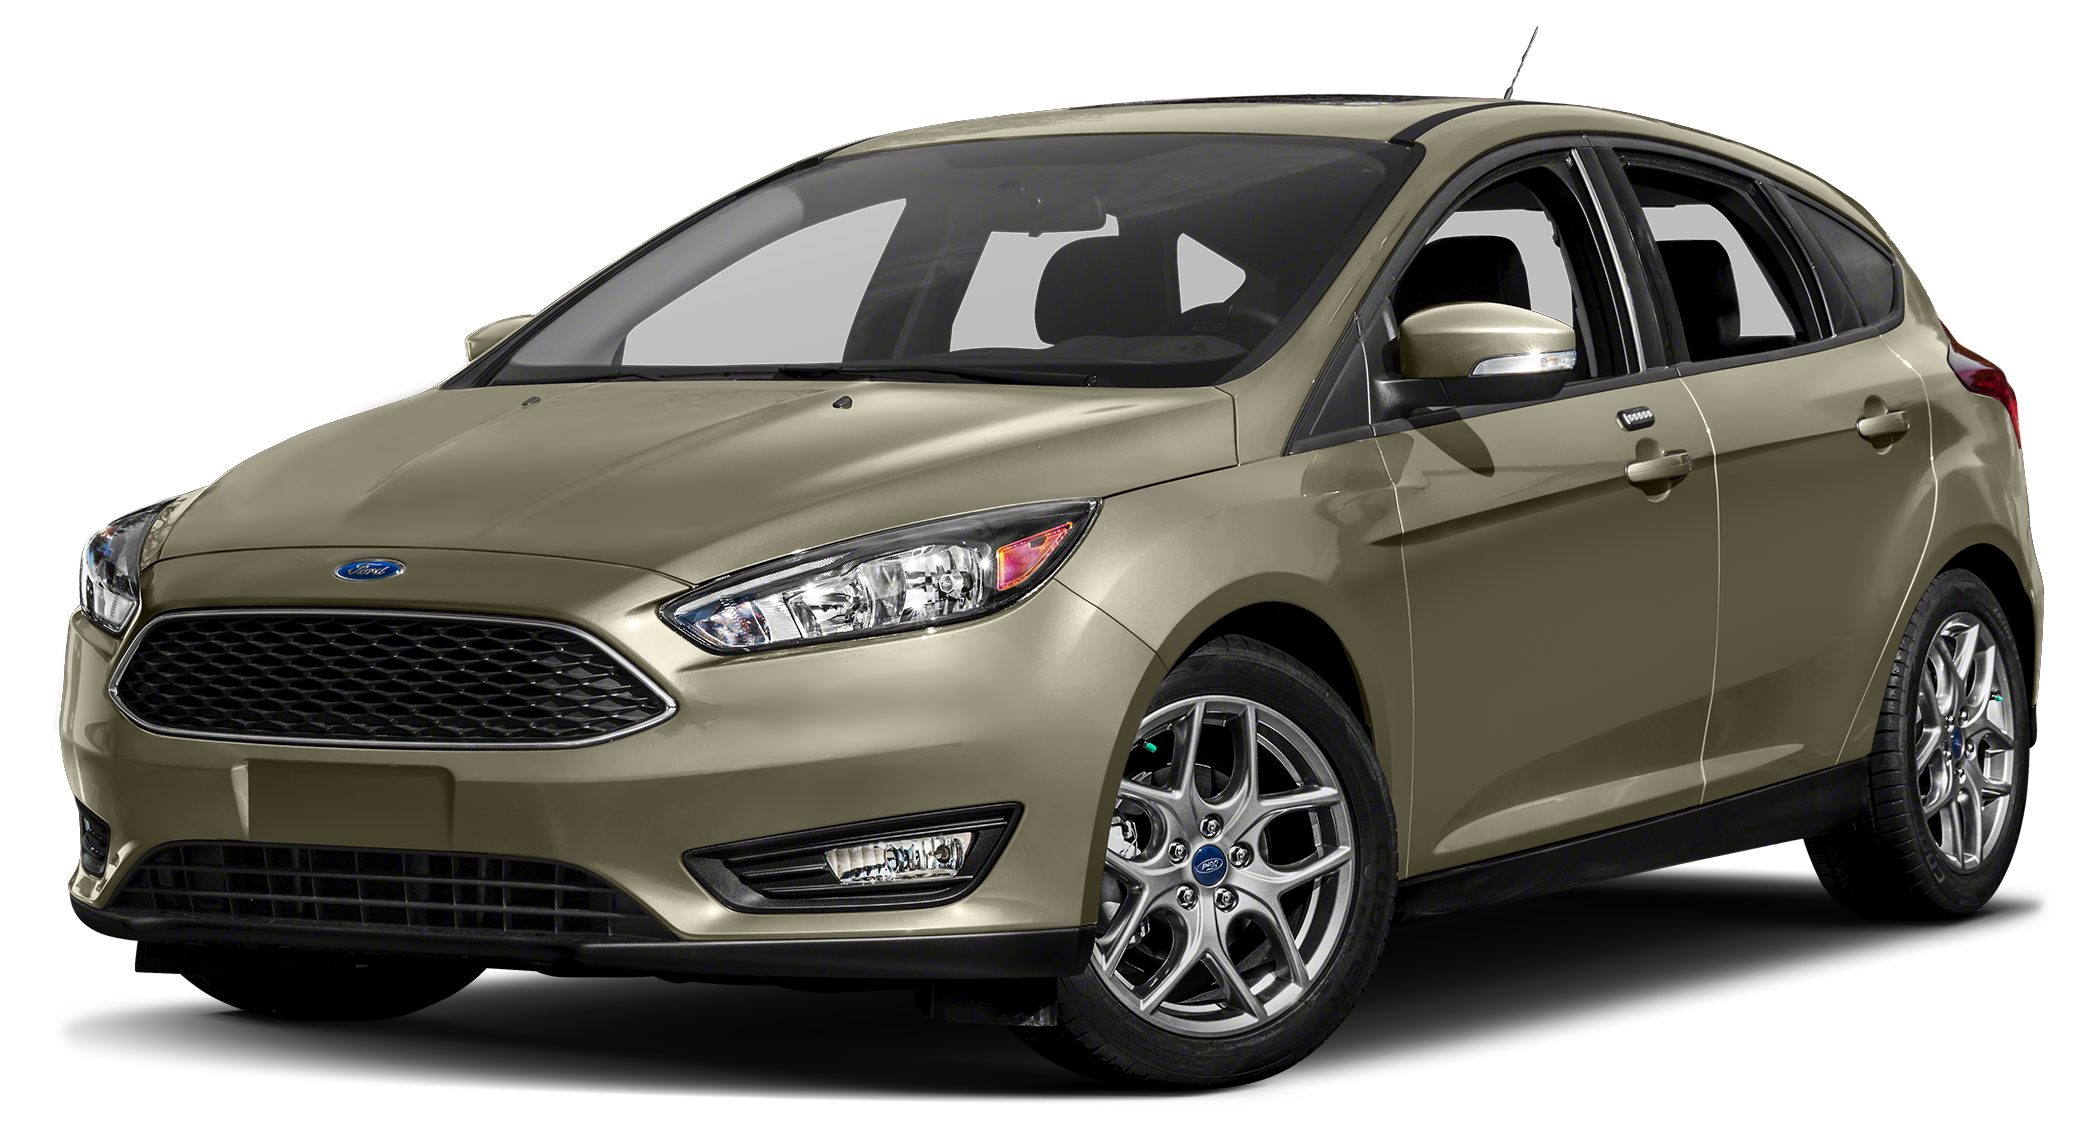 2015 Ford Focus Titanium Miles 5Color Tectonic Metallic Stock 15C0582 VIN 1FADP3N20FL382214